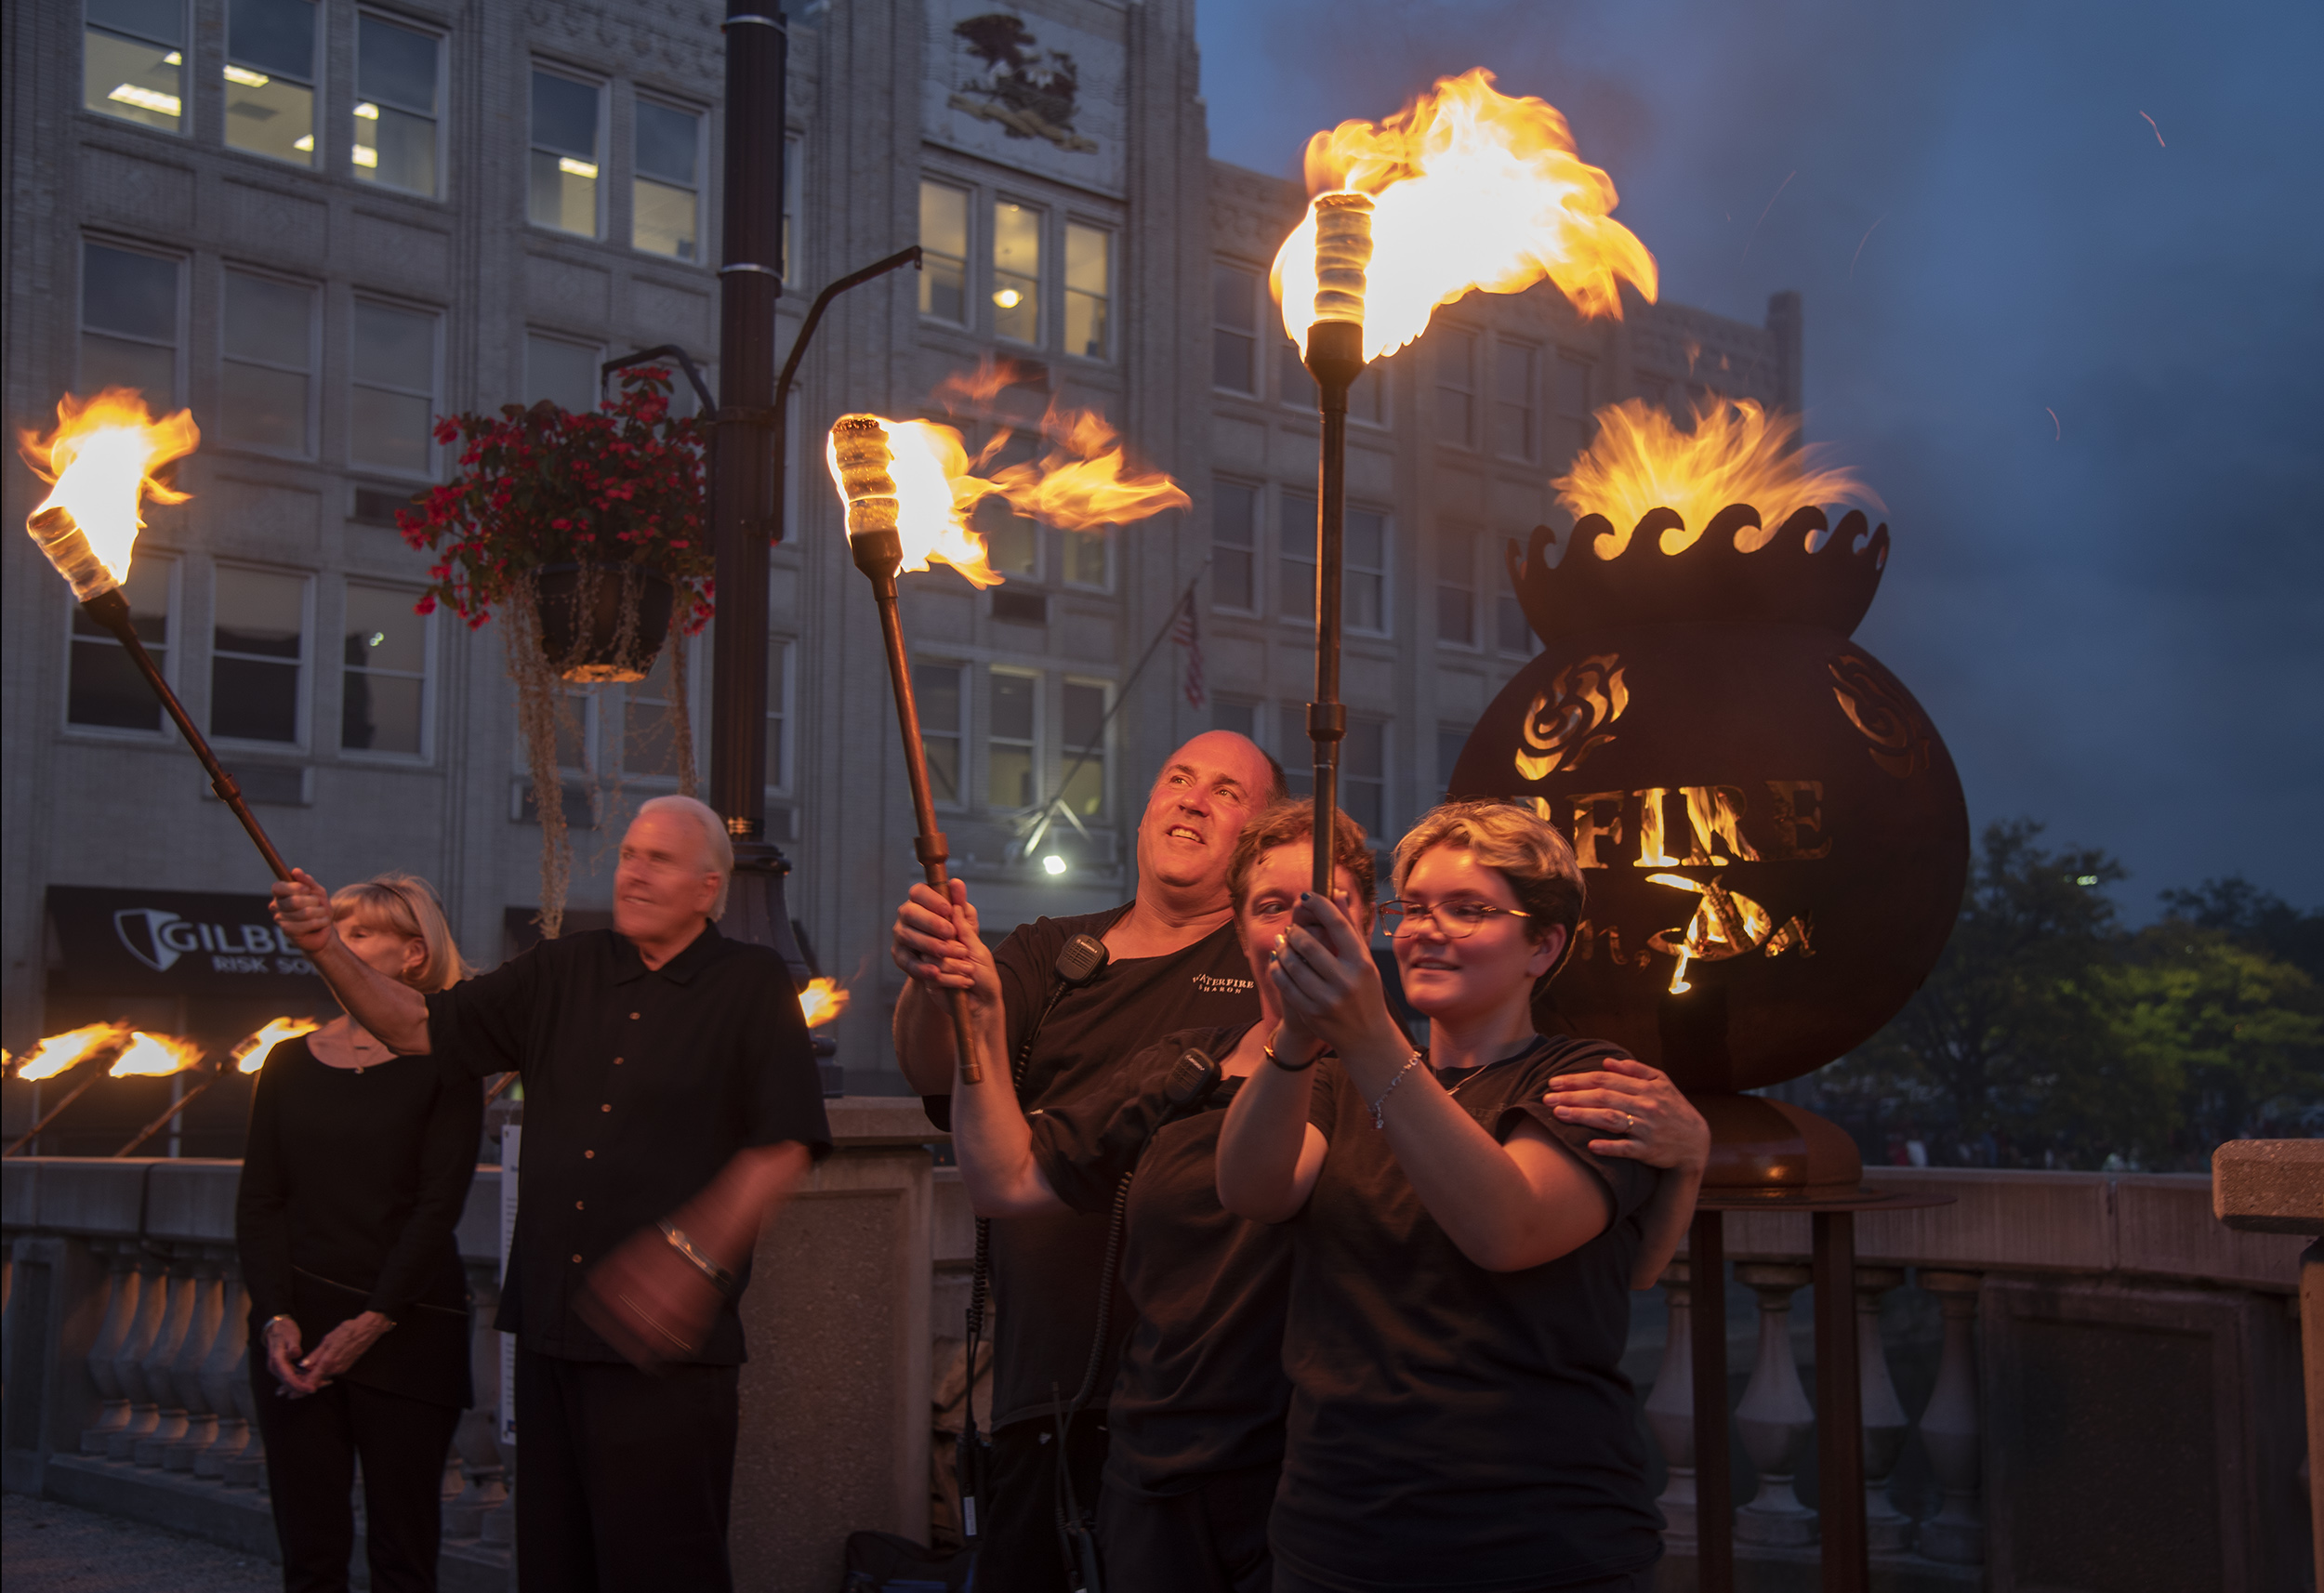 The members of two families hold their torches aloft after lighting the Waterfire Sharon orb. From left are: Gayle and Ron Anderson, and Rick, Jen and Emma Barborack. Photo by Risell Ventura